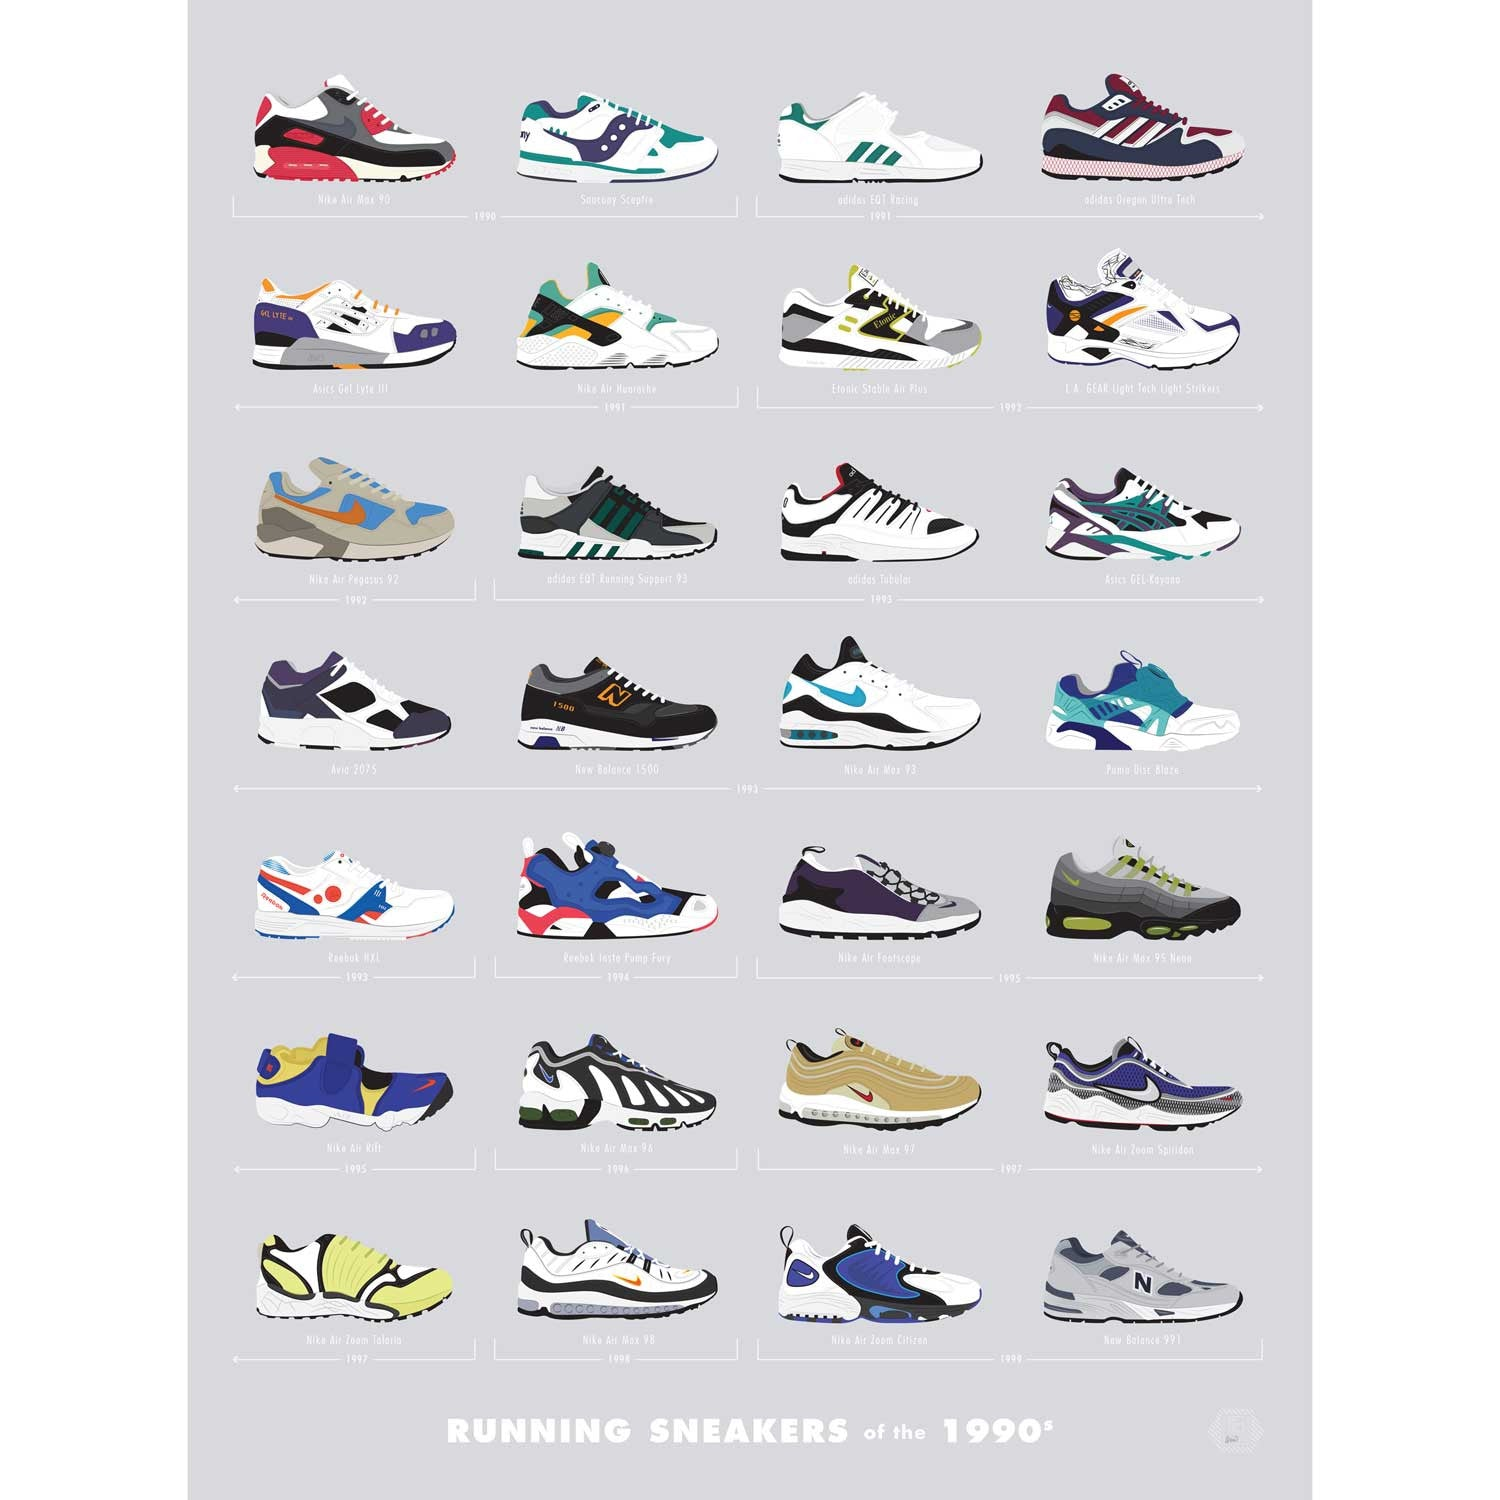 Running Sneakers of the 1990's - 12x16